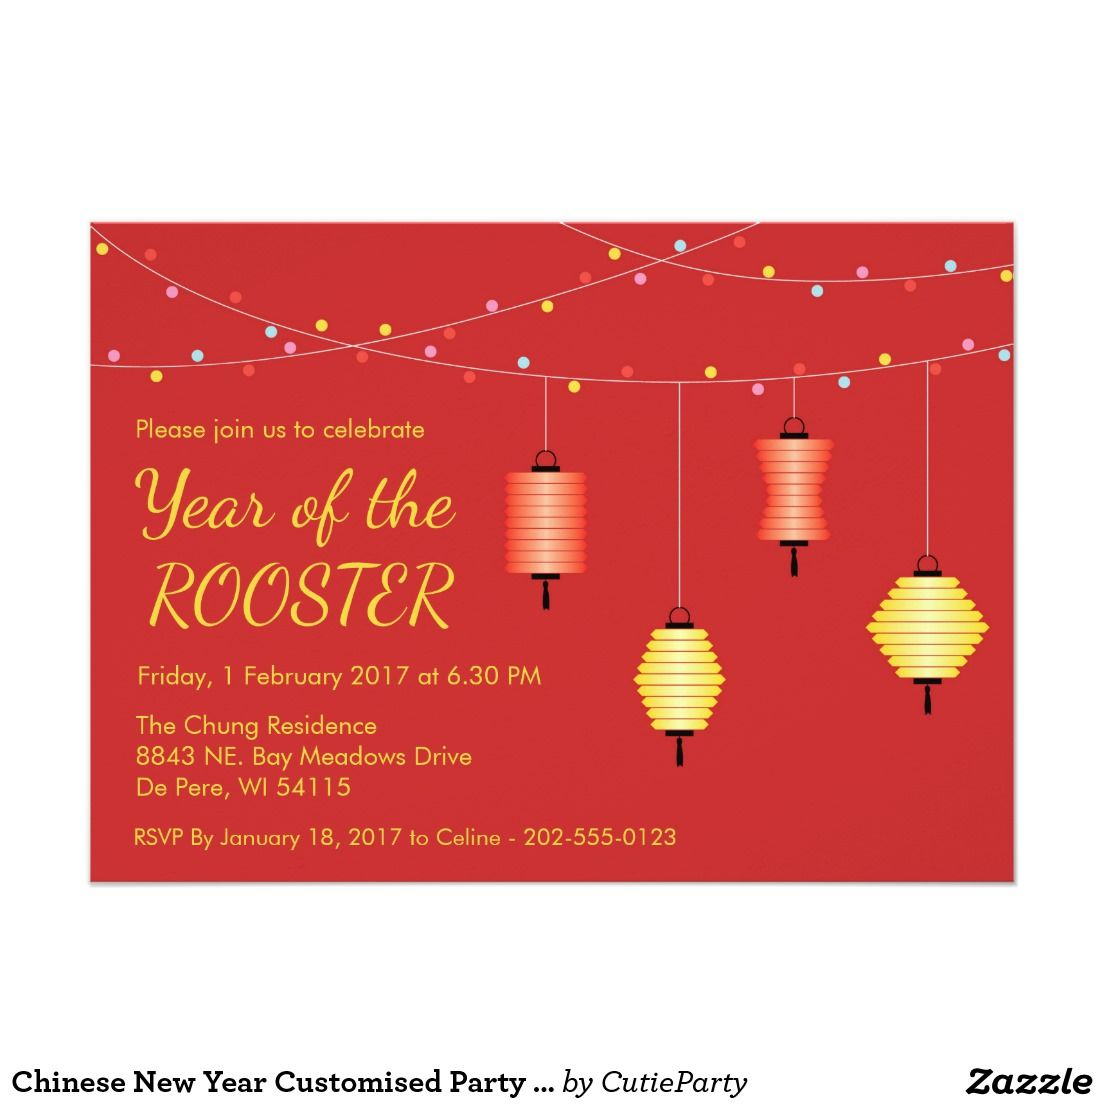 Chinese New Year Customised Party Invitation | Chinese New Year ...